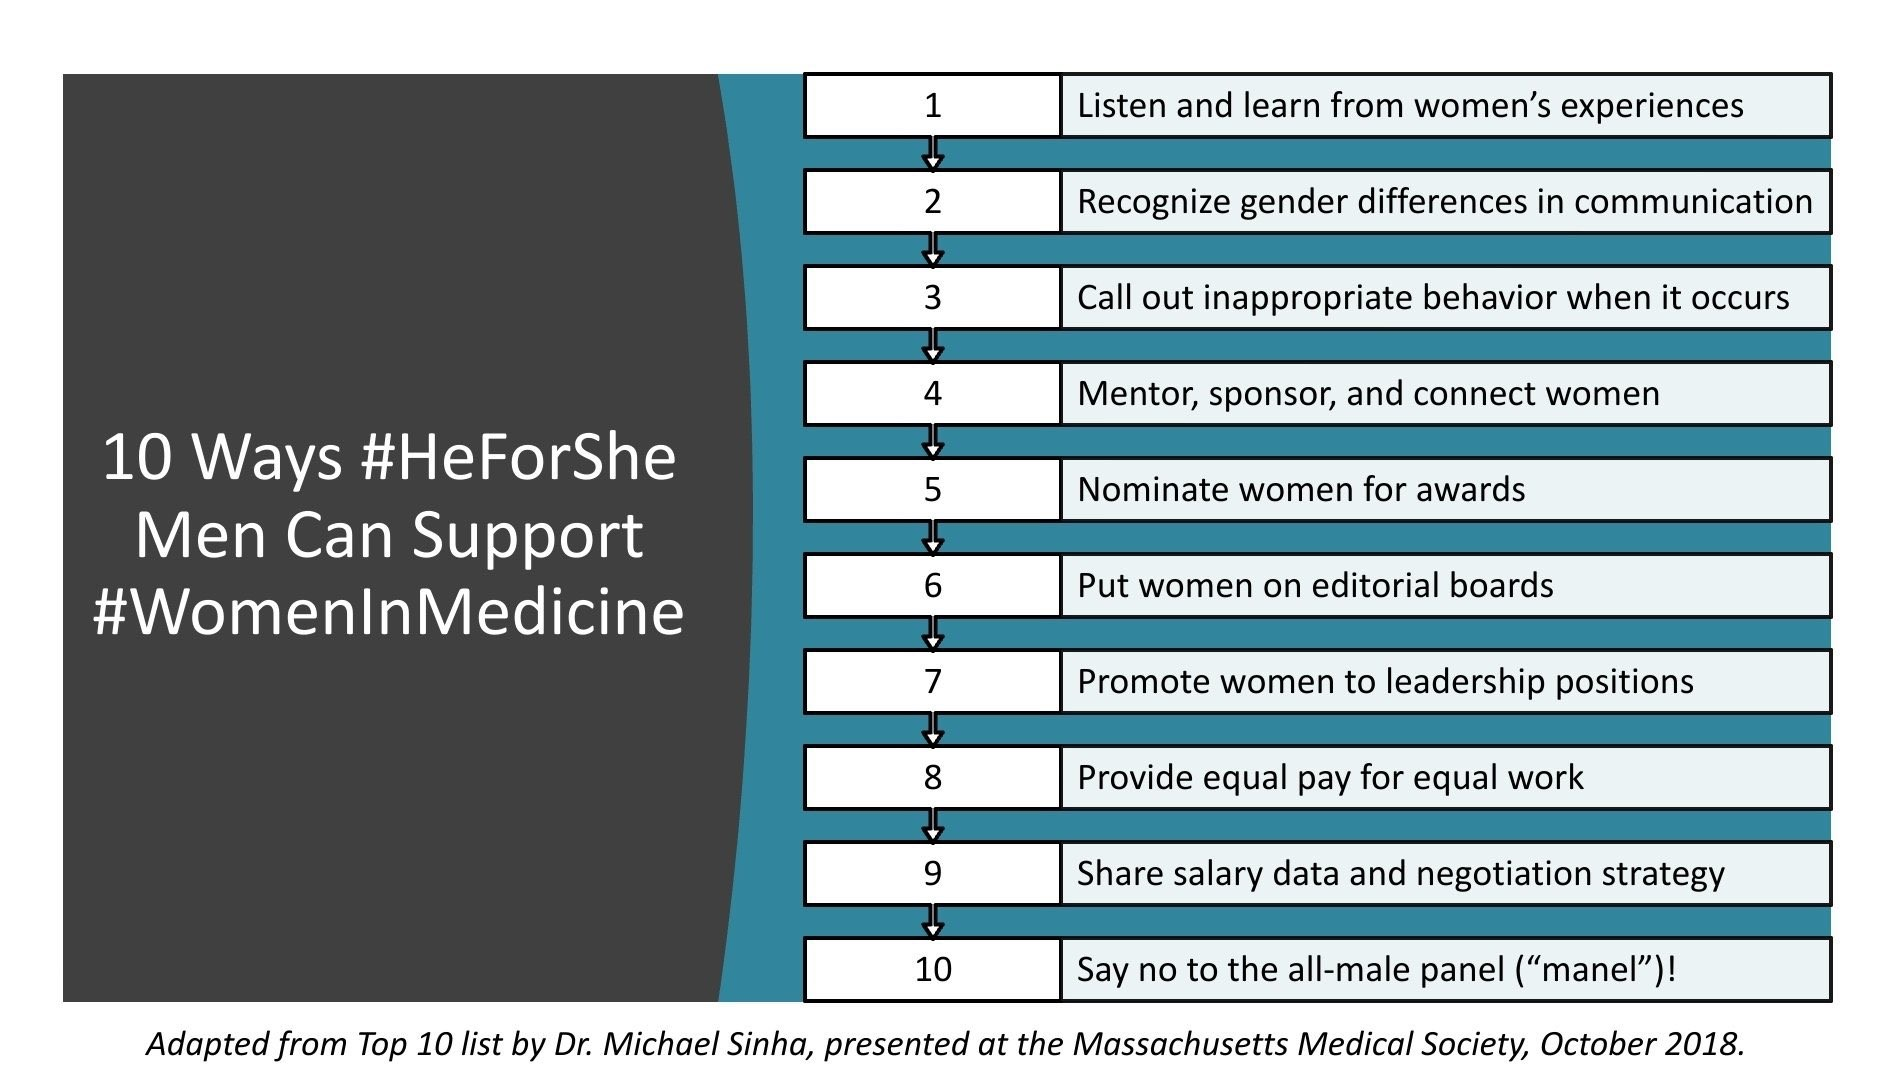 "This image has the following title: 10 ways #HeForShe Men Can Support #WomenInMedicine. The list is as follows: 1- Listen and learn from women's experiences 2- Recognize gender differences in communication 3- Call out inappropriate behavior when it occurs 4- Mentor, sponsor, and connect women 5- Nominate women for awards 6- Put women on editorial boards 7- Promote women to leadership positions 8- Provide equal pay for equal work 9- Share salary data and negotiation strategy 10- Say no to the all-male panel (""manel"")! This list is adapted from the Top 10 list by Dr. Michael Sinha, presented at the Massachusetts Medical Society, October 2018"